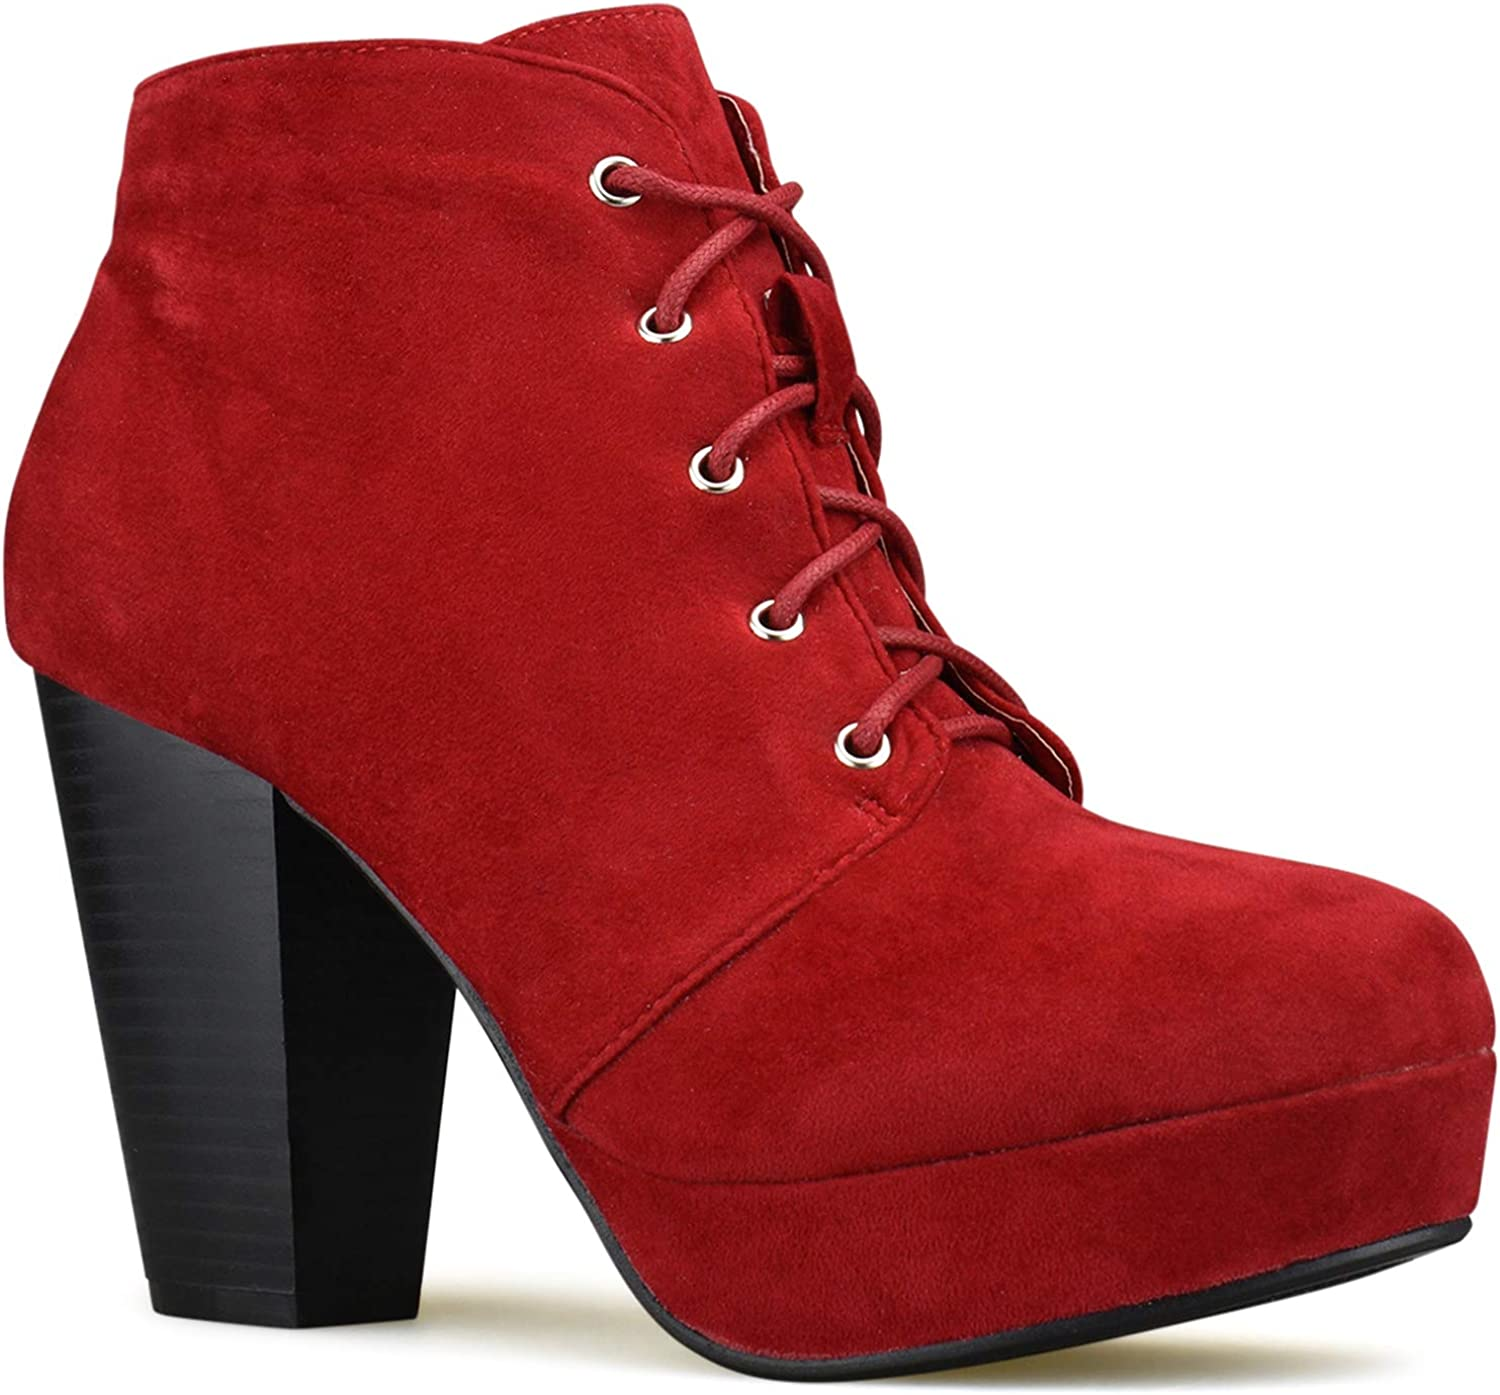 Premier Standard - Women's Strappy Buckle Block Heel Ankle Booties - Lace up Chunky Ankle Booties